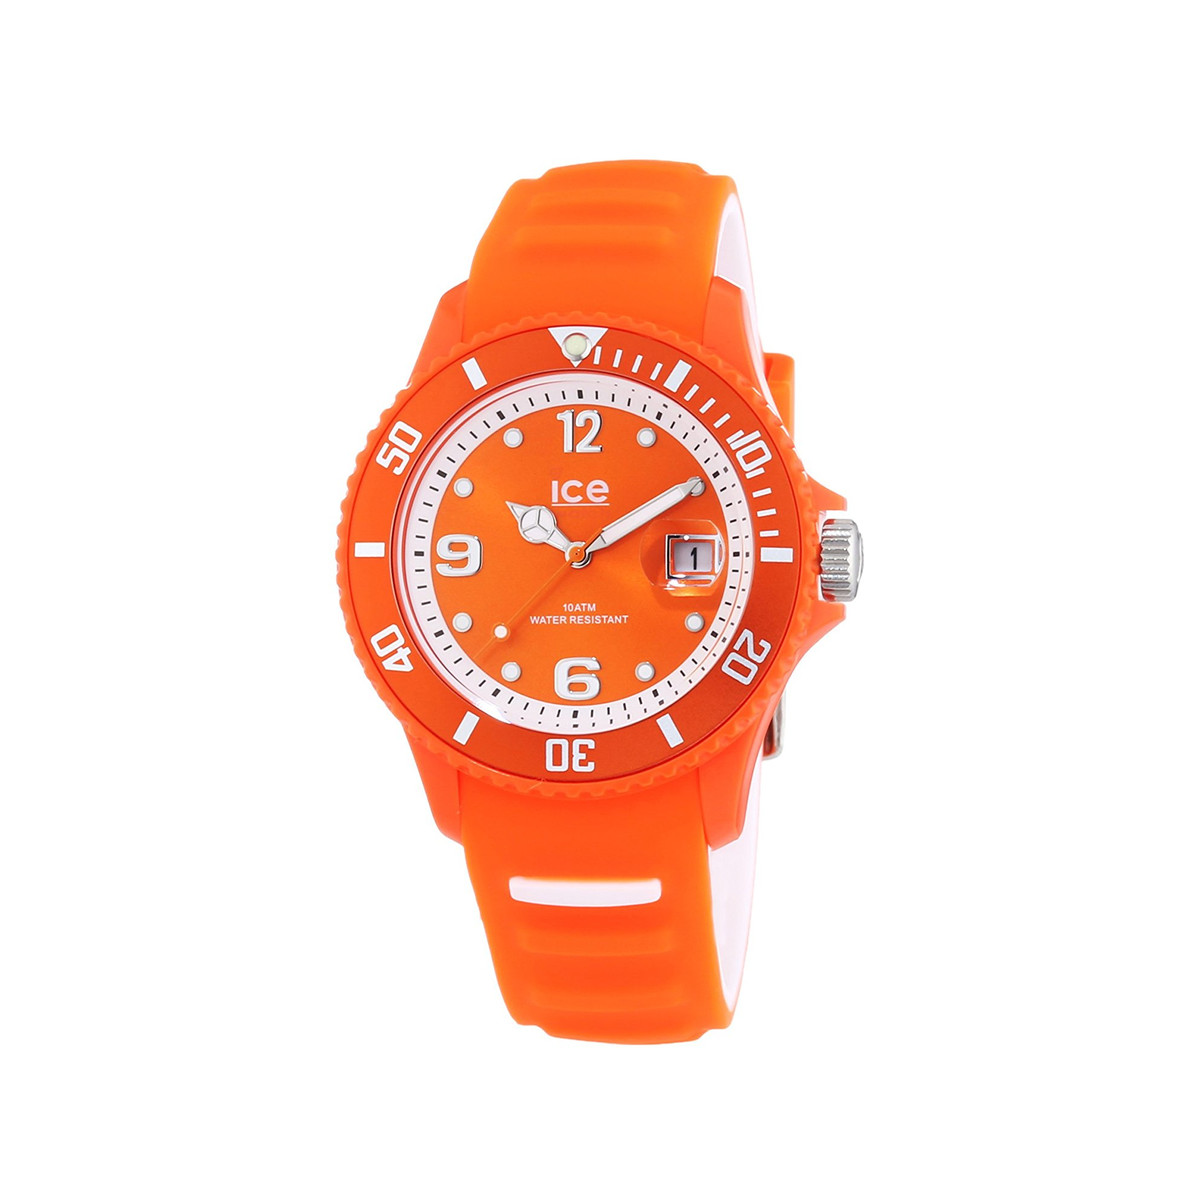 Montre Ice Watch mixte orange - vue 1